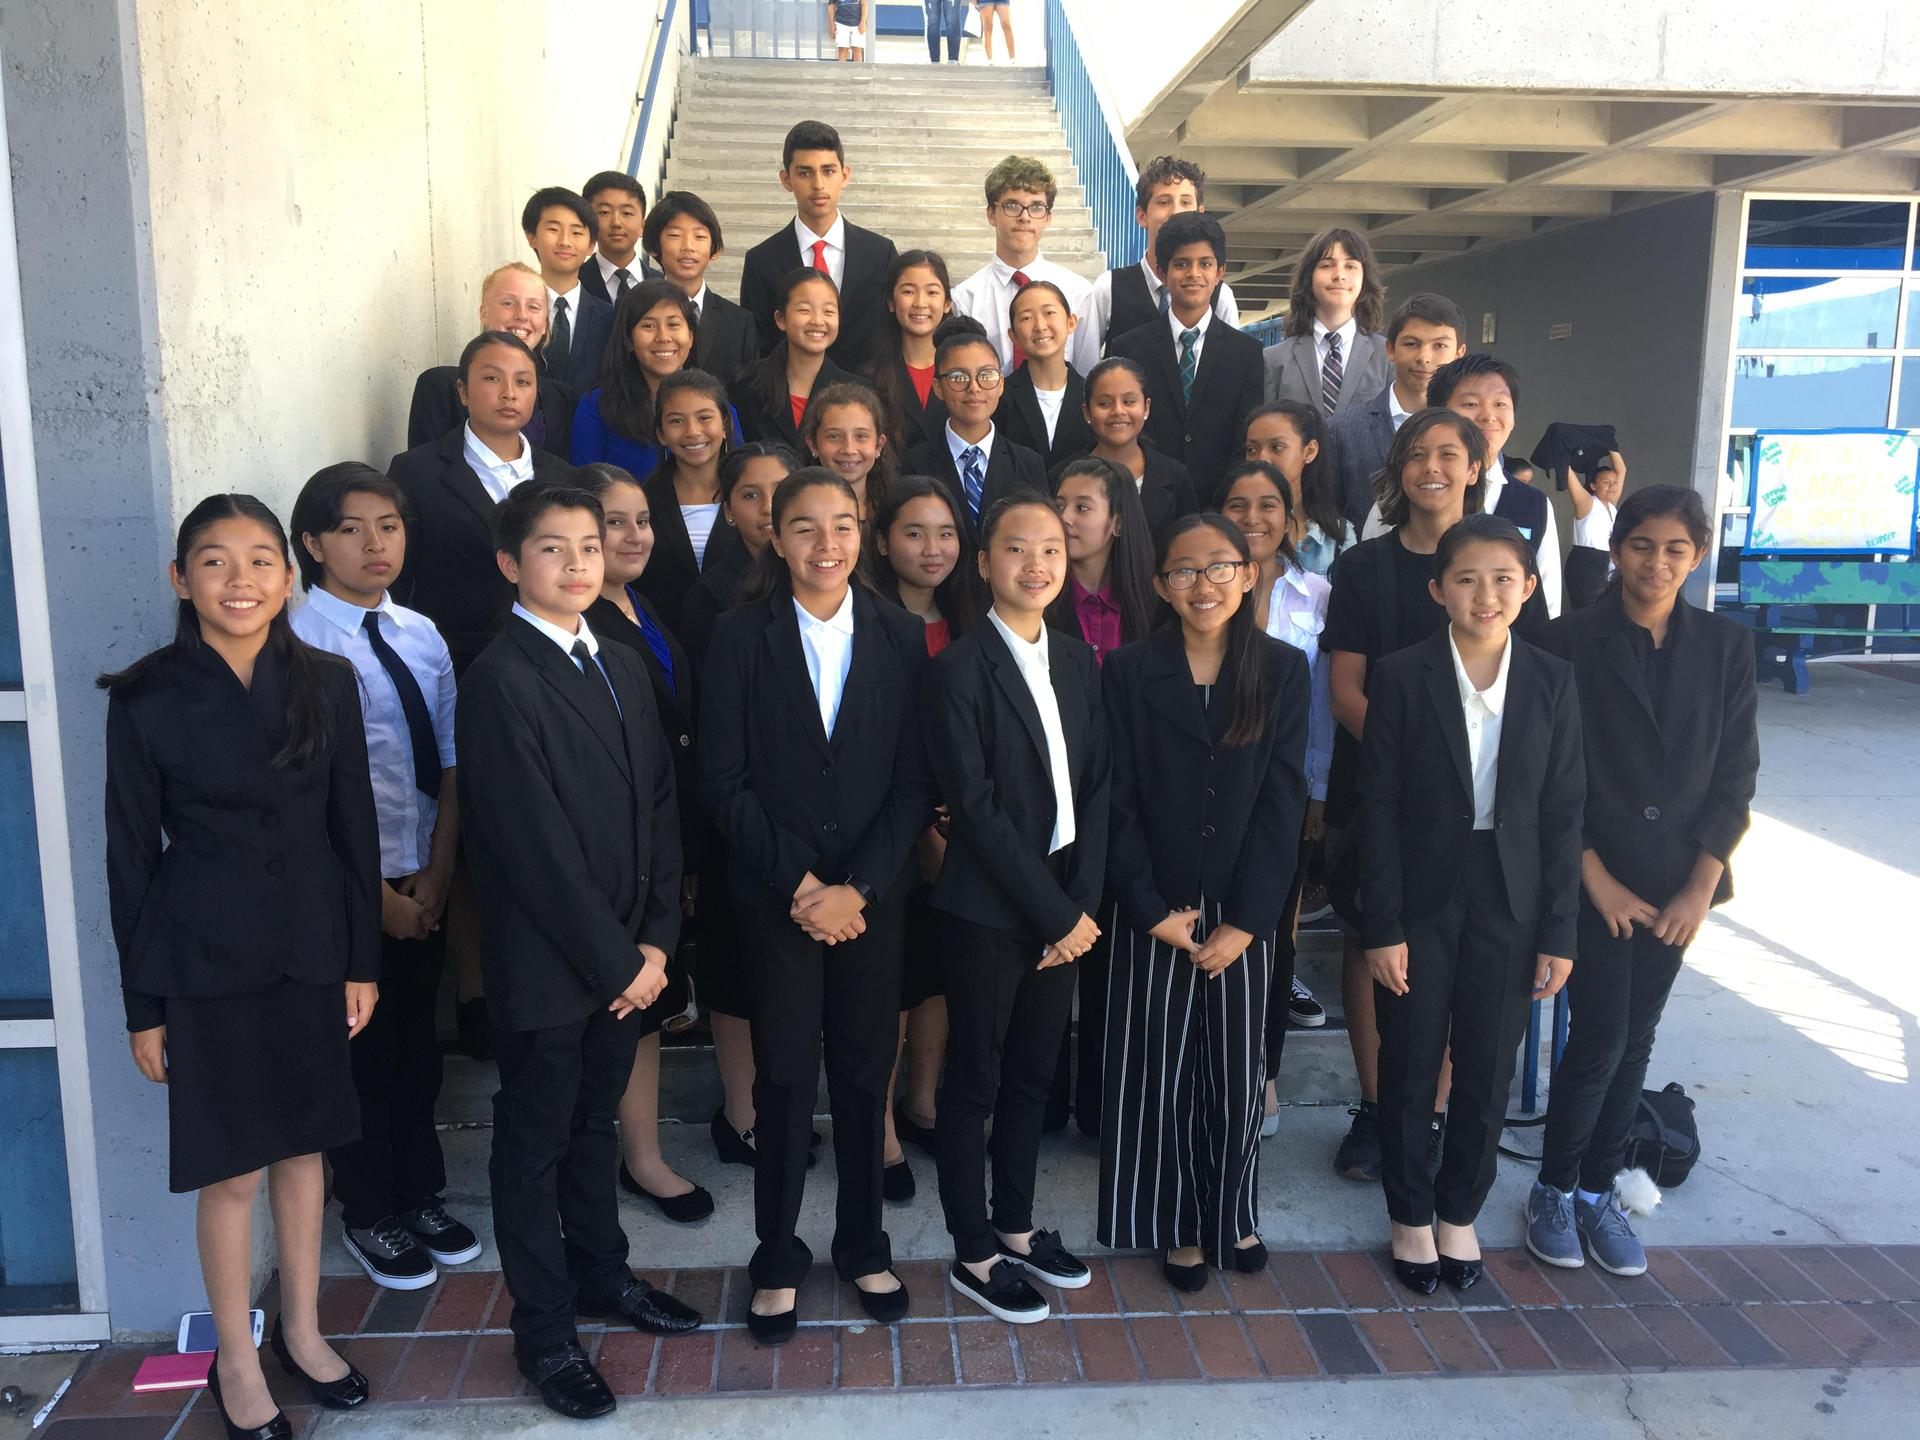 Large group of students in suits